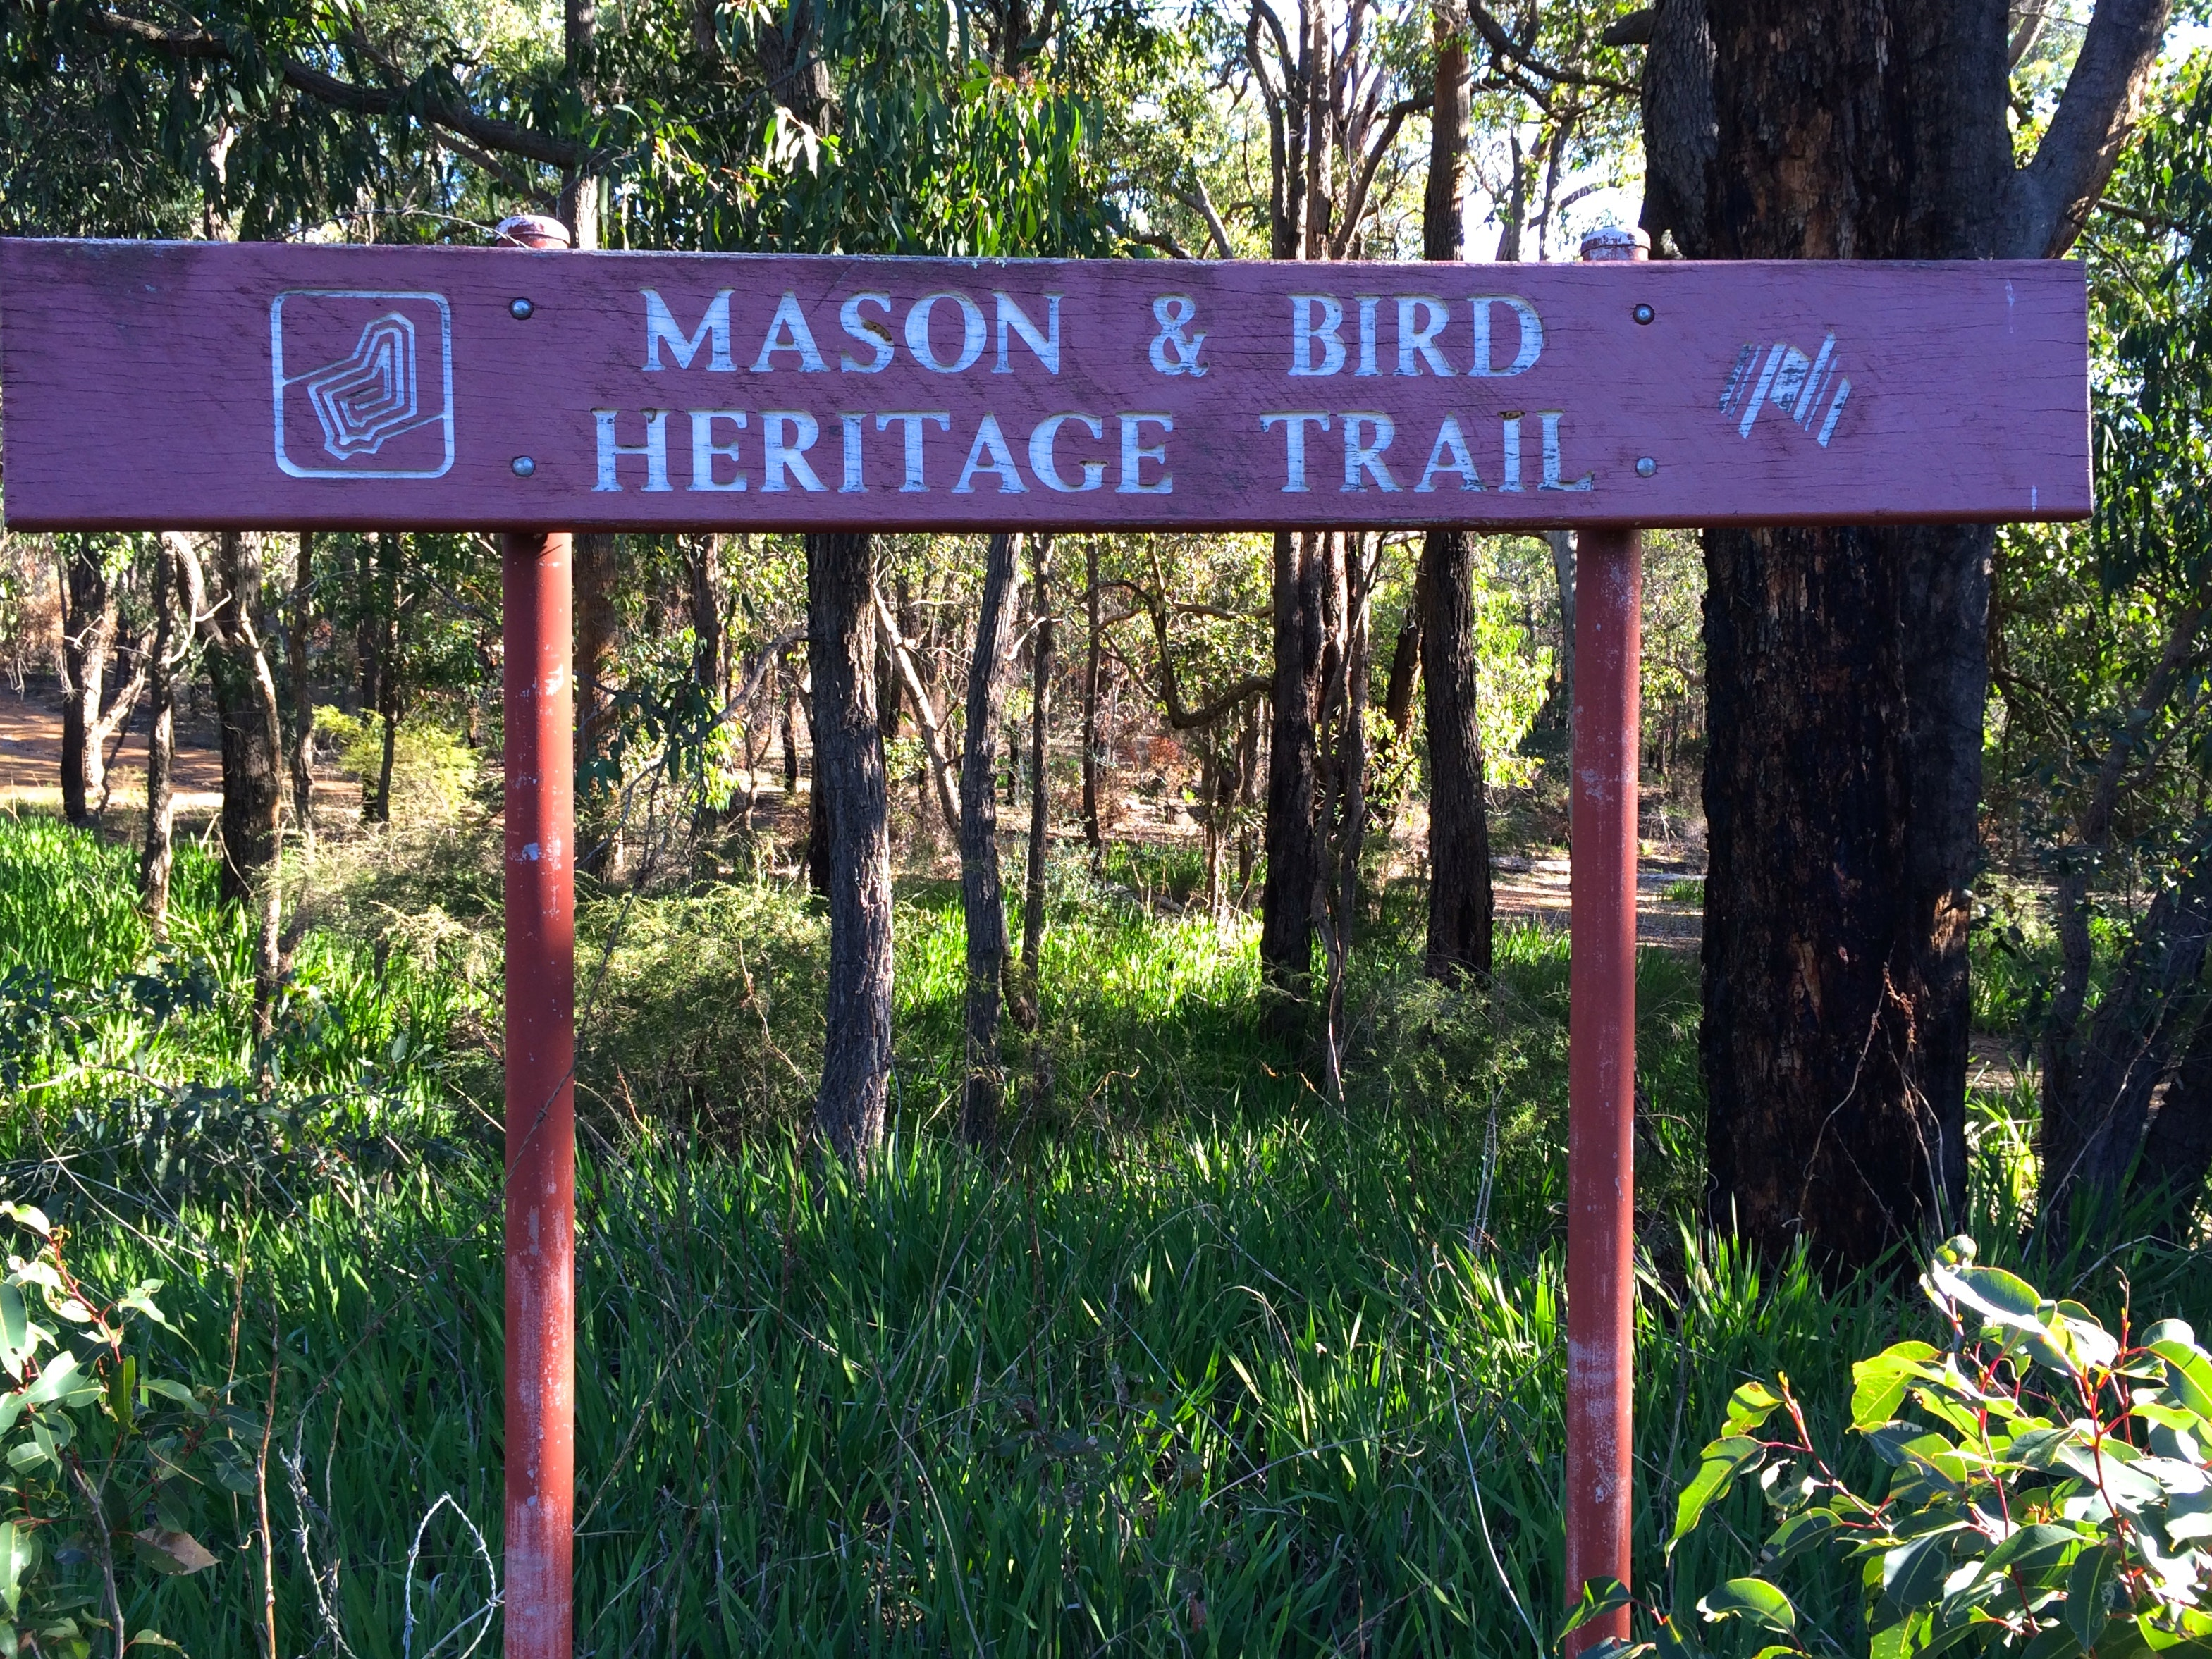 Mason & Bird Heritage Trail - start